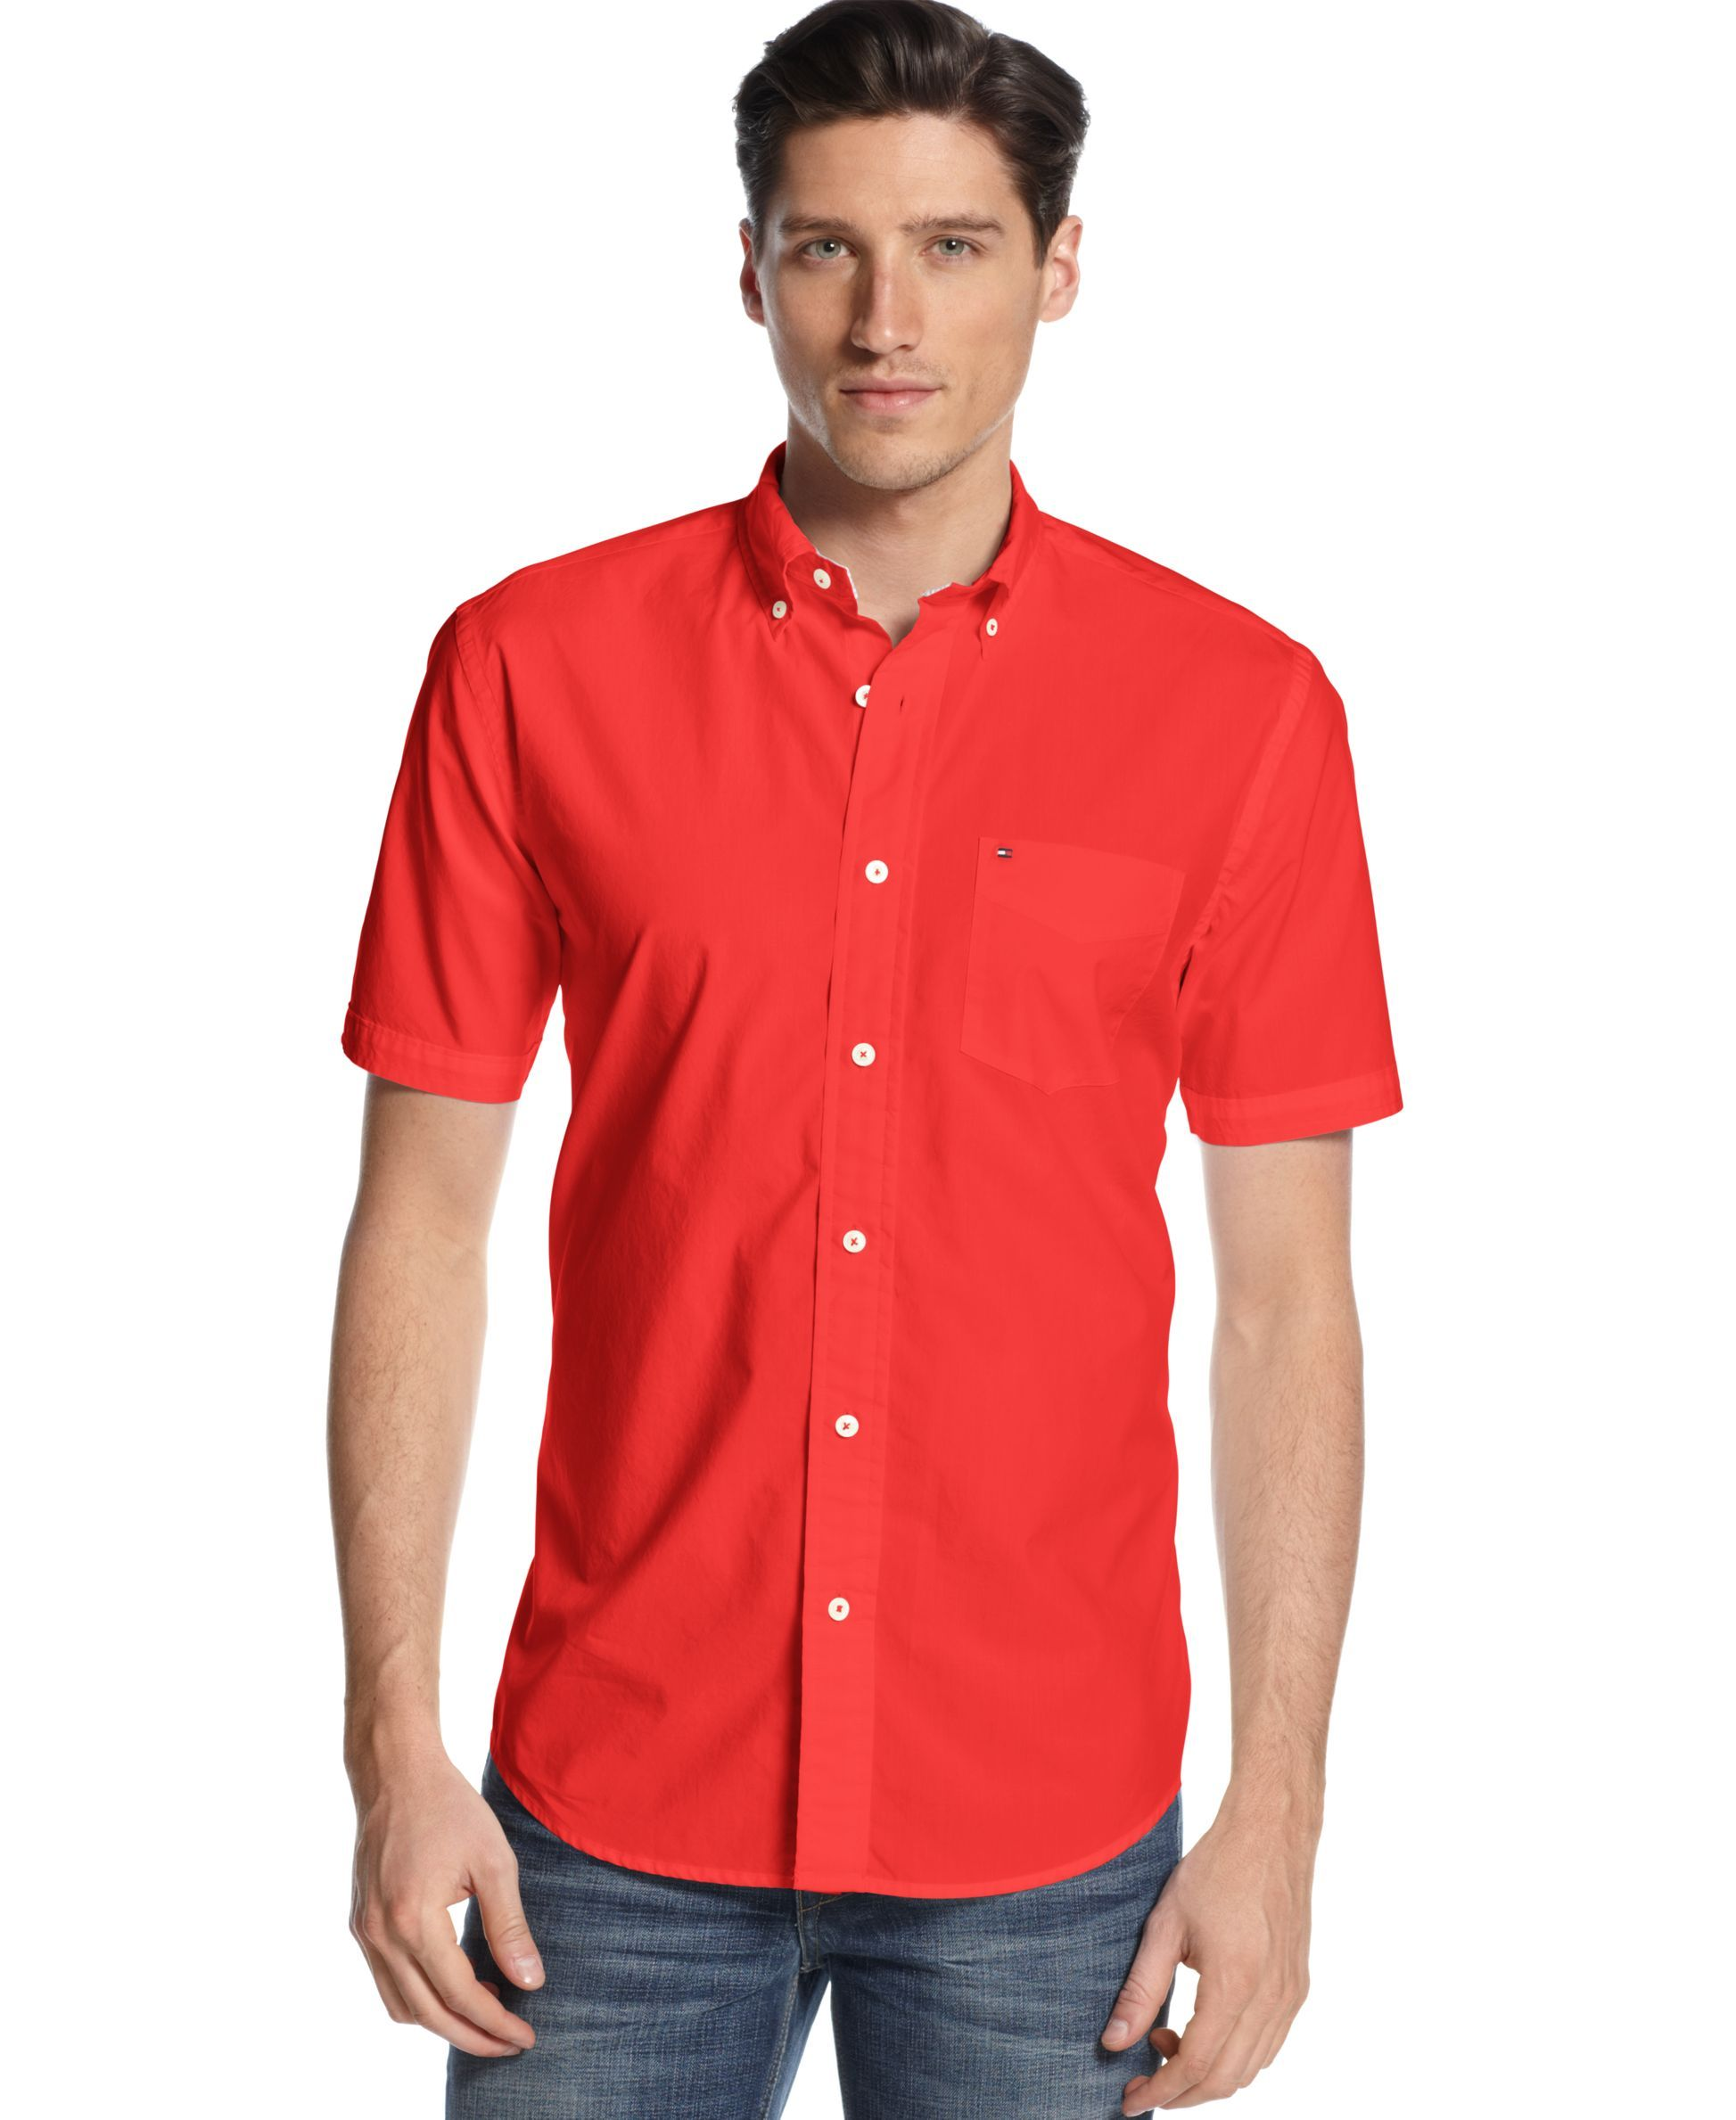 76aaab526 Men s Maxwell Short-Sleeve Button-Down Classic Fit Shirt